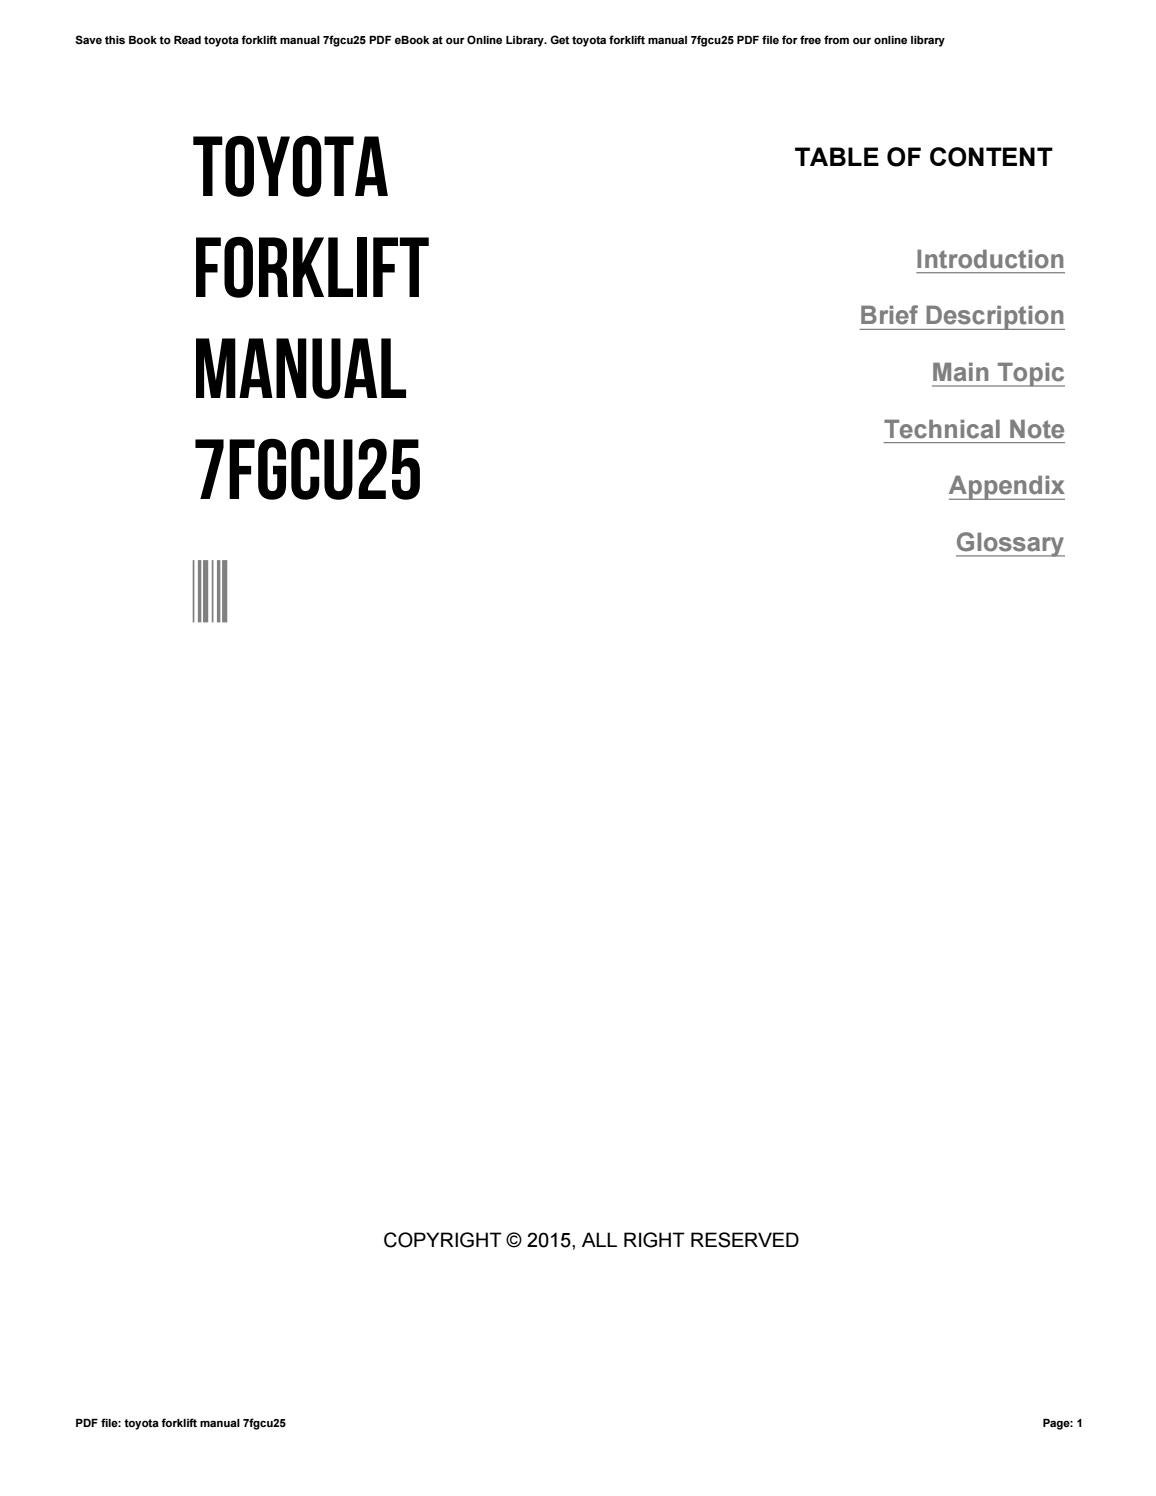 Toyota 7fgcu25 Wiring Diagram Libraries Forklift Pdf Library